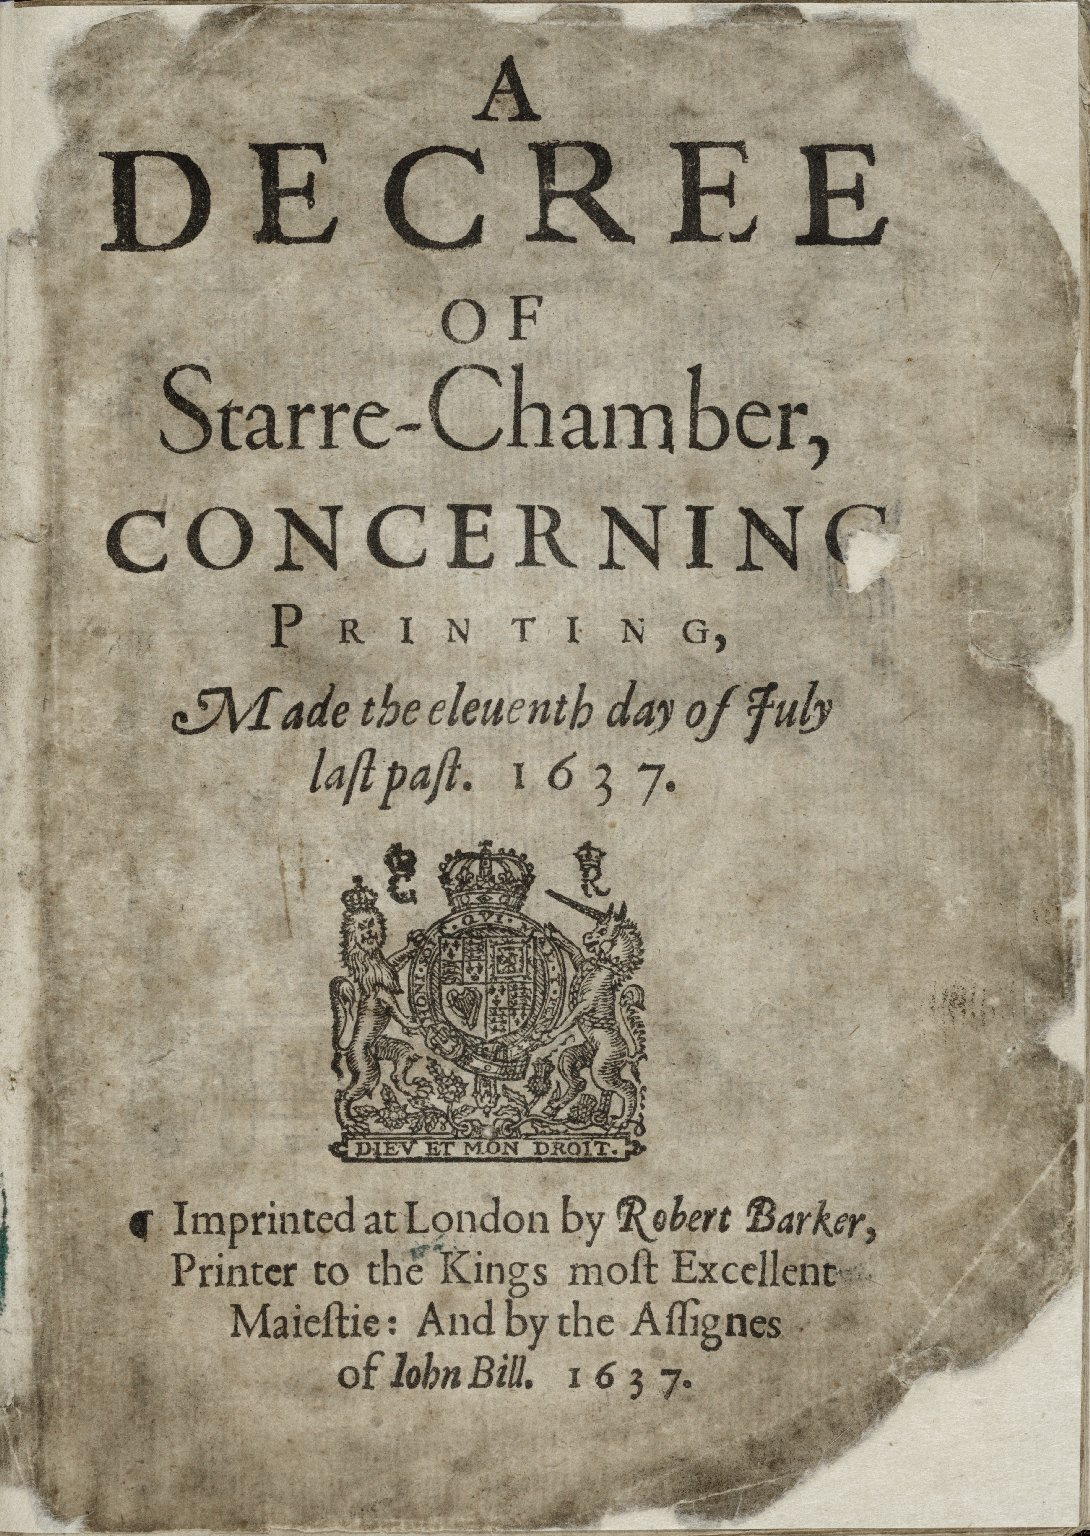 A decree of Starre-Chamber, concerning printing, made the eleuenth day of Iuly last past. 1637.